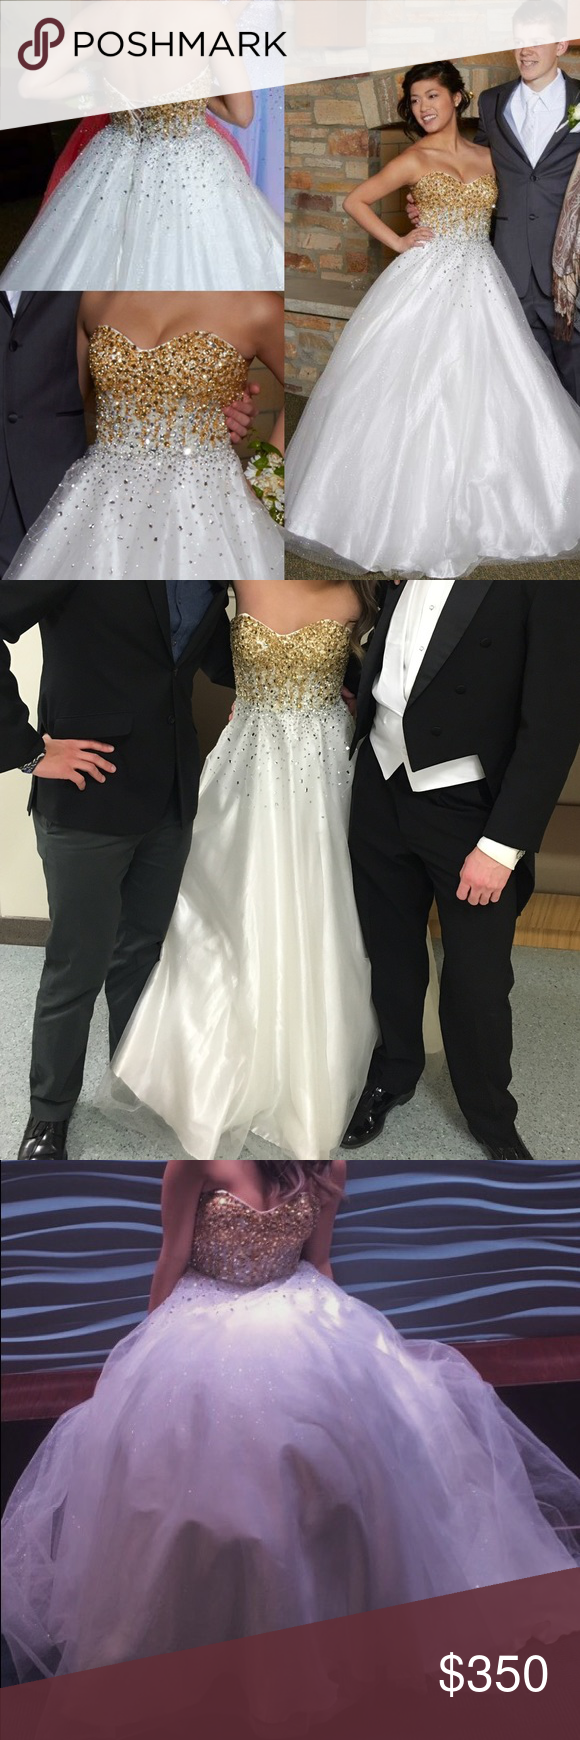 White and gold prom dress gold prom dresses ball gowns and dress prom